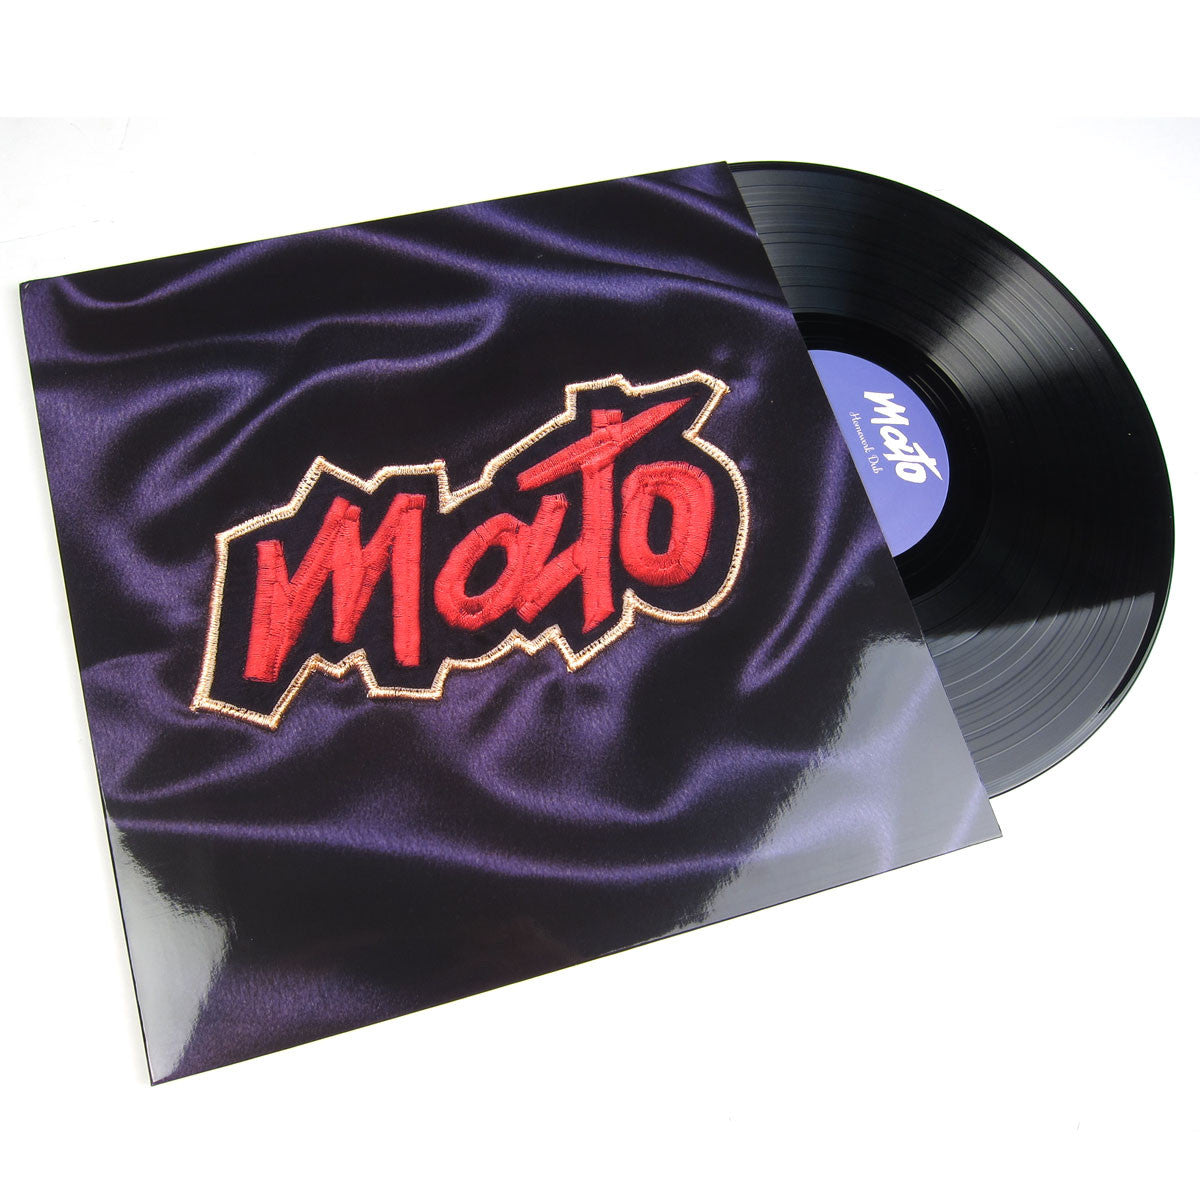 Mato: Homework Dub (Daft Punk Dub Version) Vinyl LP